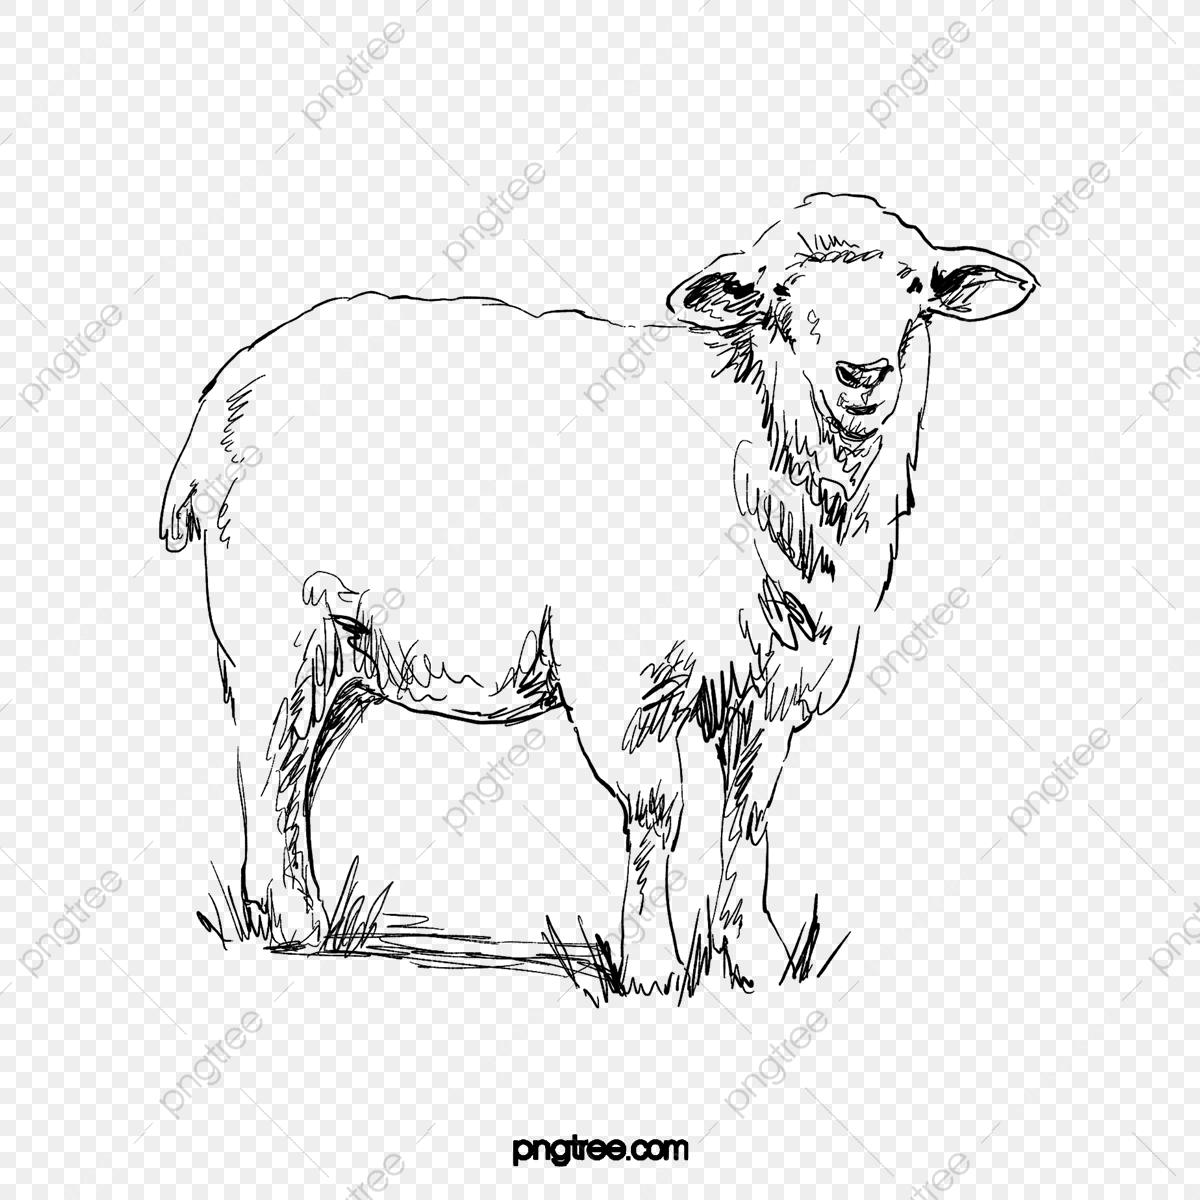 Black Line Drawing Animal Sheep Element Animal Sheep Element Png Transparent Clipart Image And Psd File For Free Download